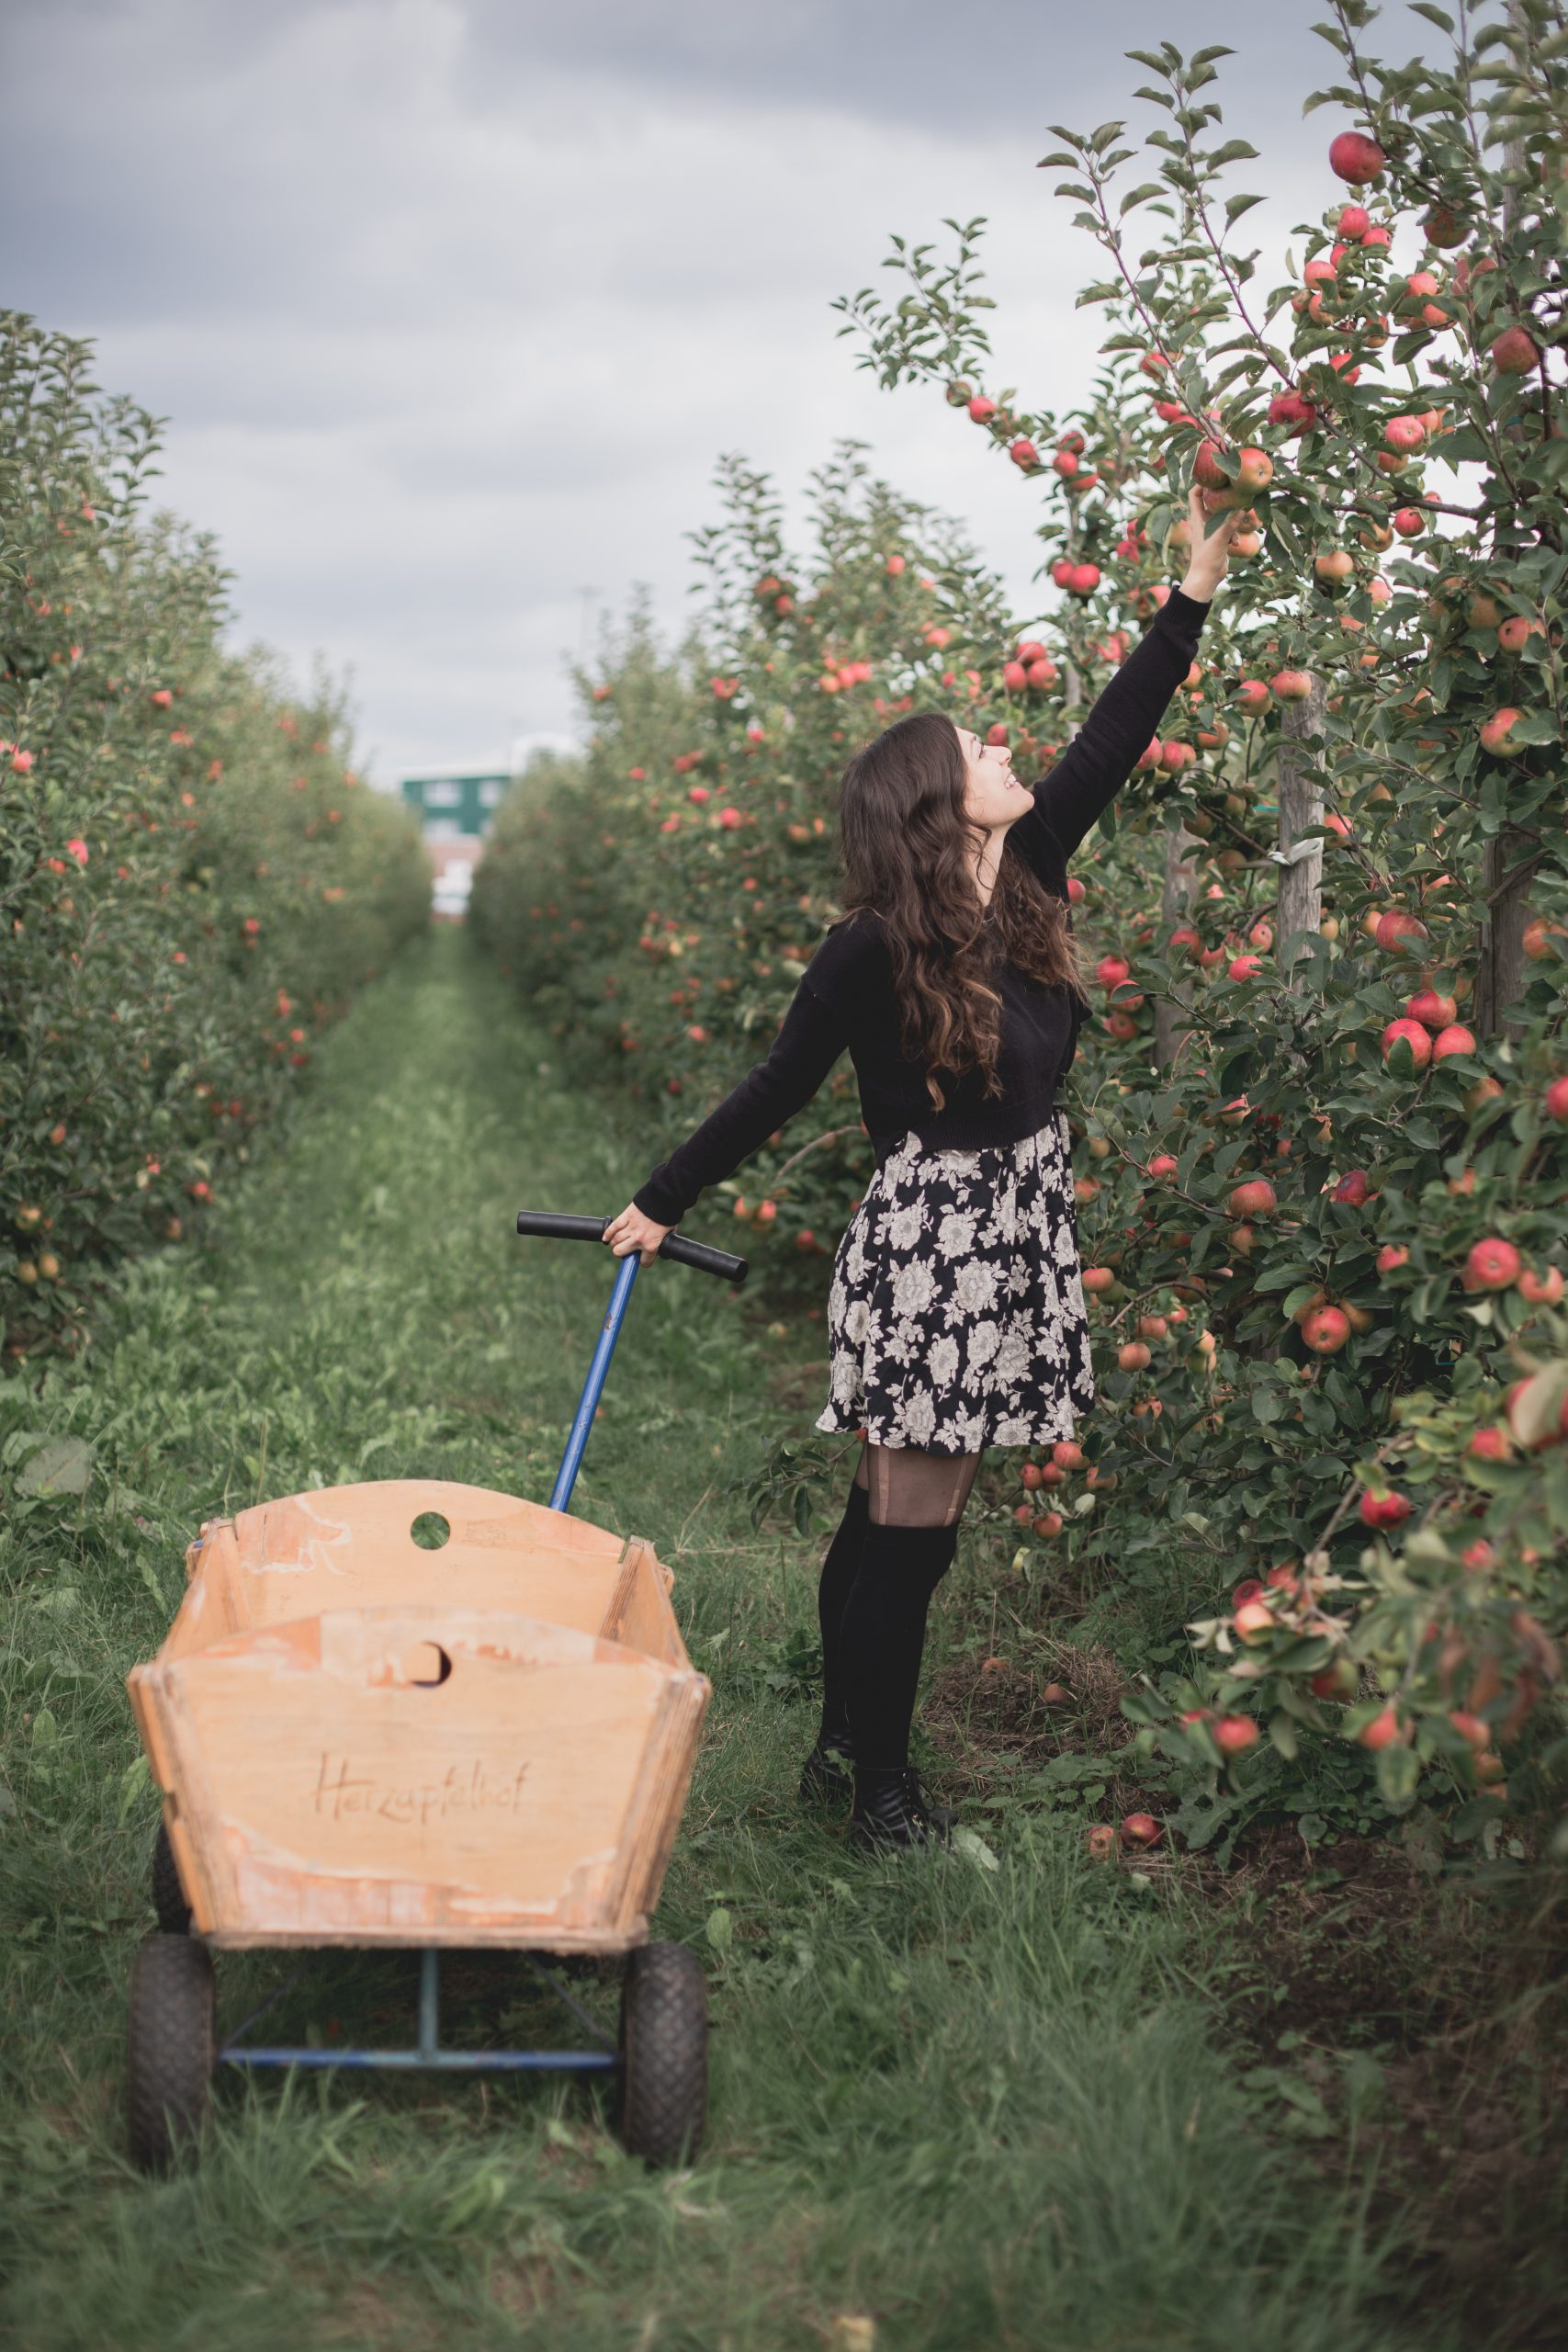 Kelsey reaching for an apple in an apple orchard in Altes Land, Germany